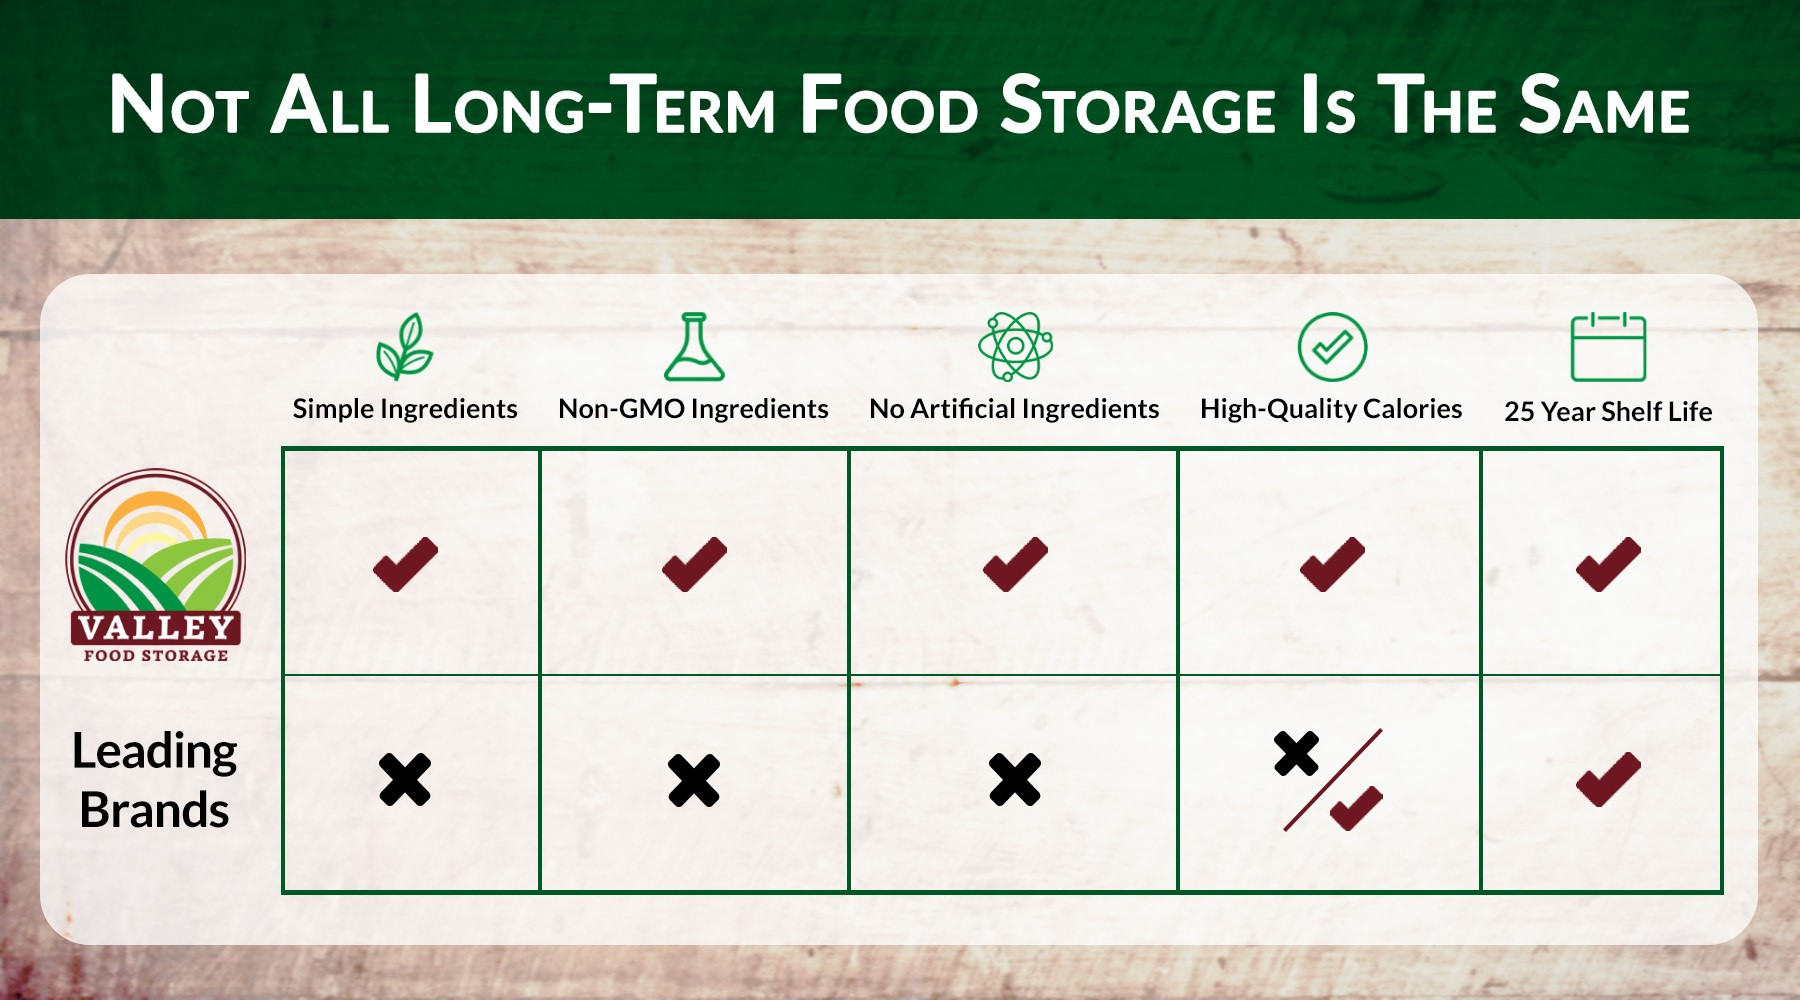 Long-term food storage comparison between Valley Food Storage and Other Leading Brands